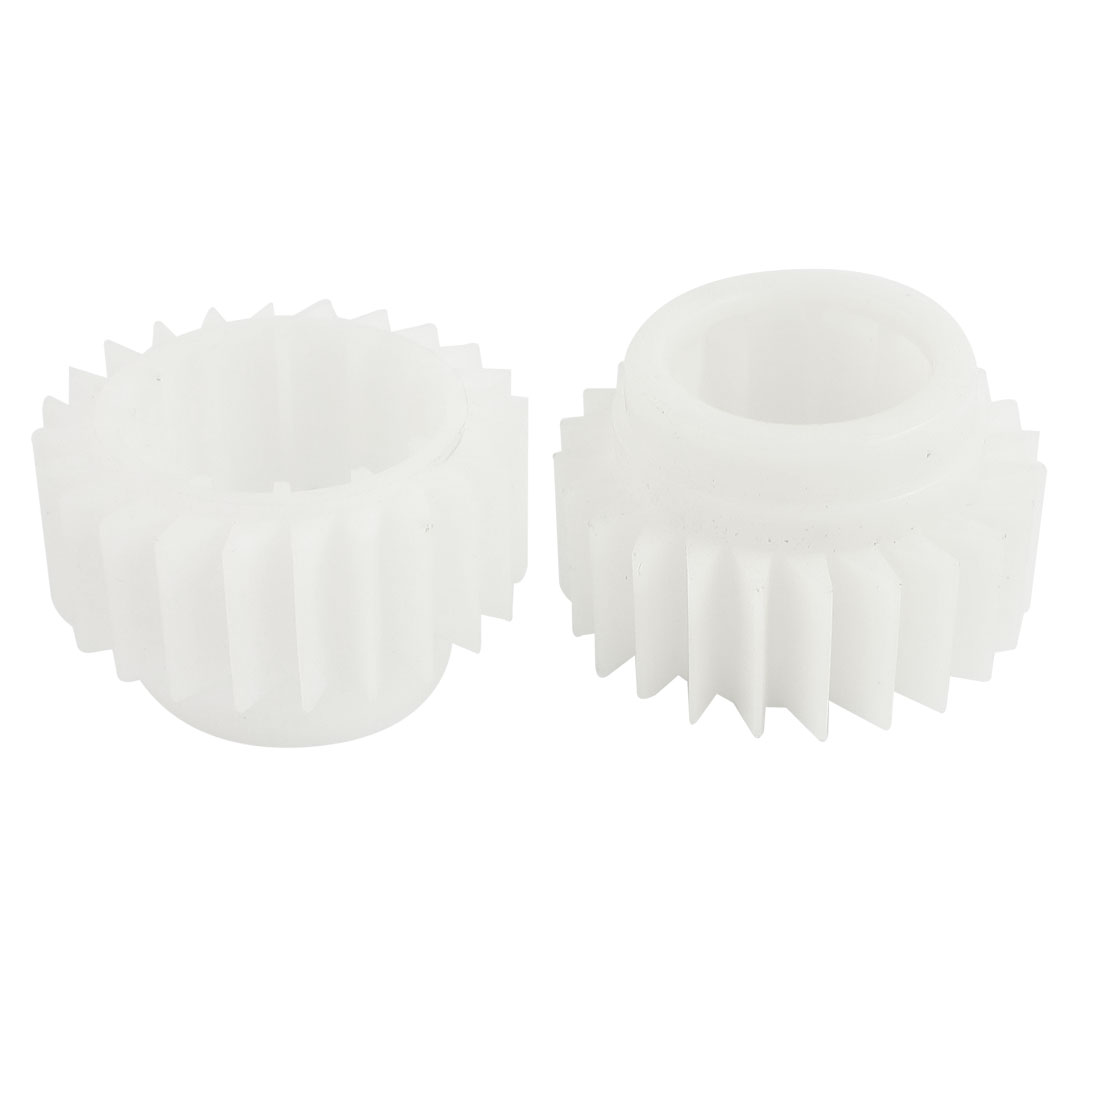 2 Pcs 18mm Width 24 Teeth Plastic Ratchet Wheel White for LG Washing Machine Washer